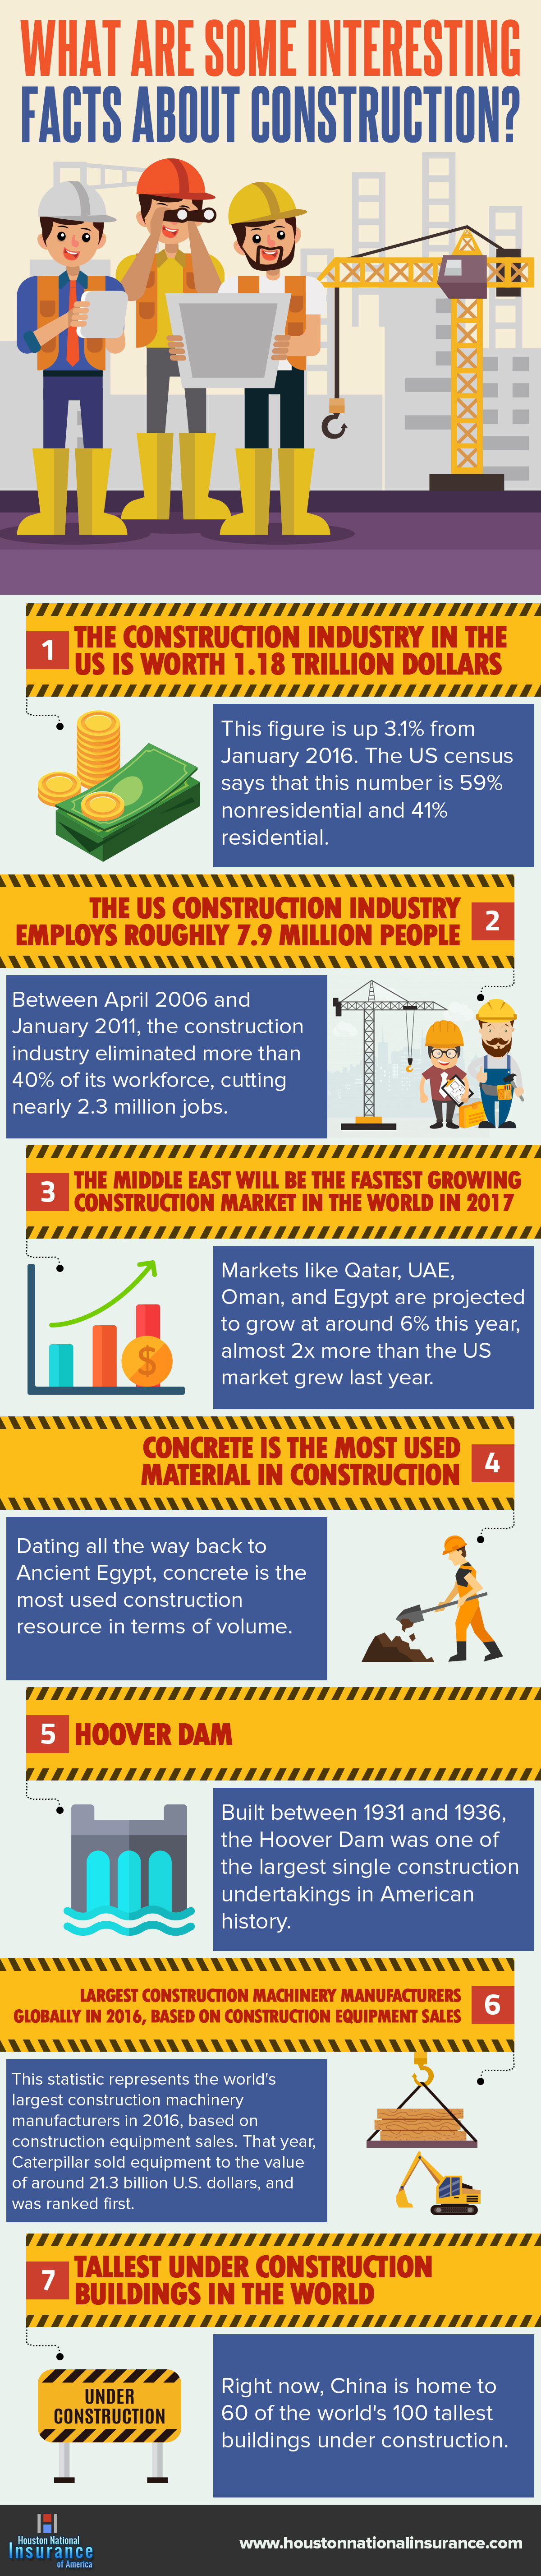 What Are Some Interesting Facts About Construction?